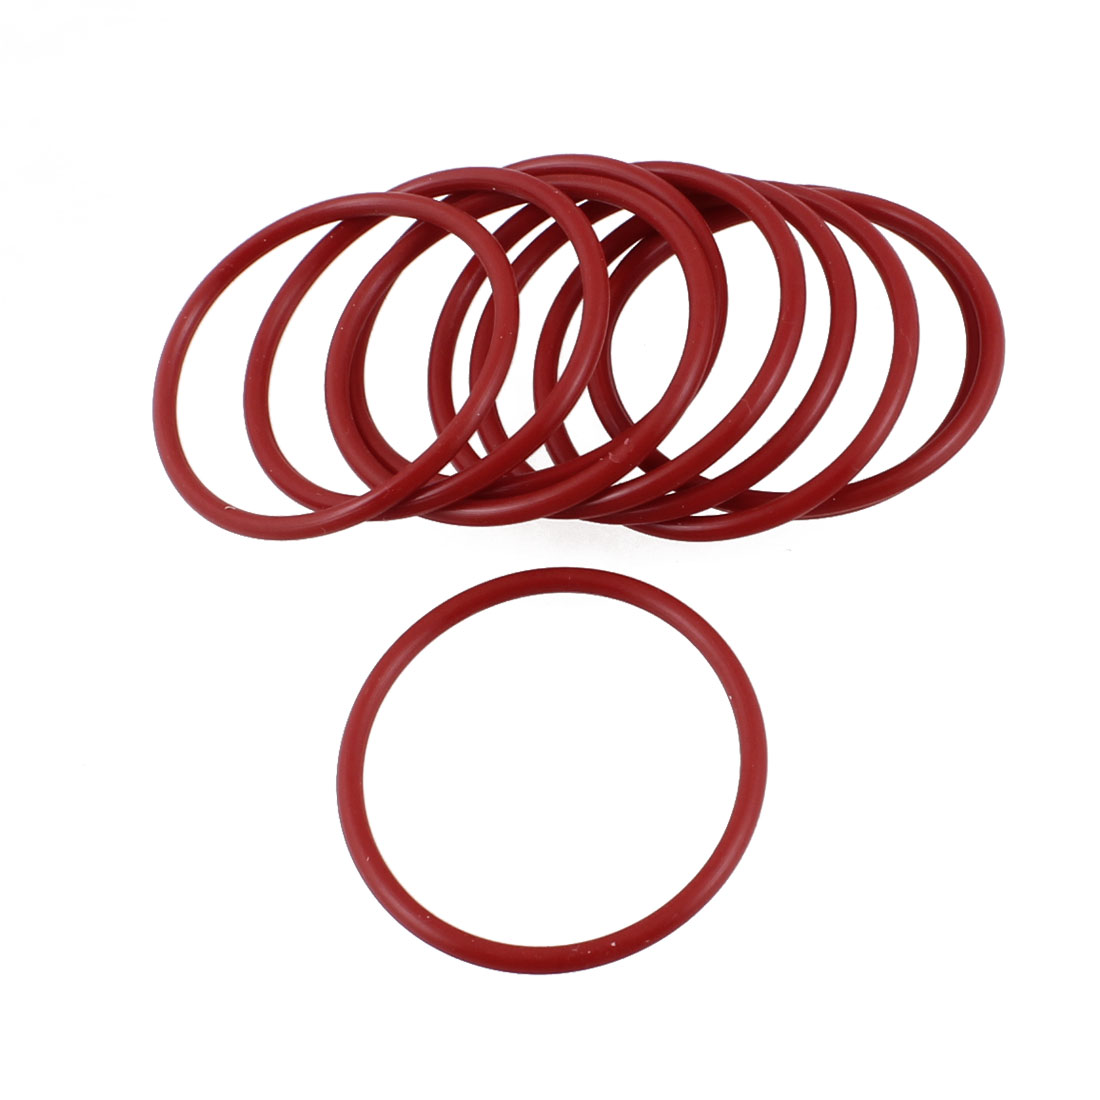 10 Pcs 40mm x 2.5mm Mechanical Rubber O Ring Oil Seals Gaskets Red